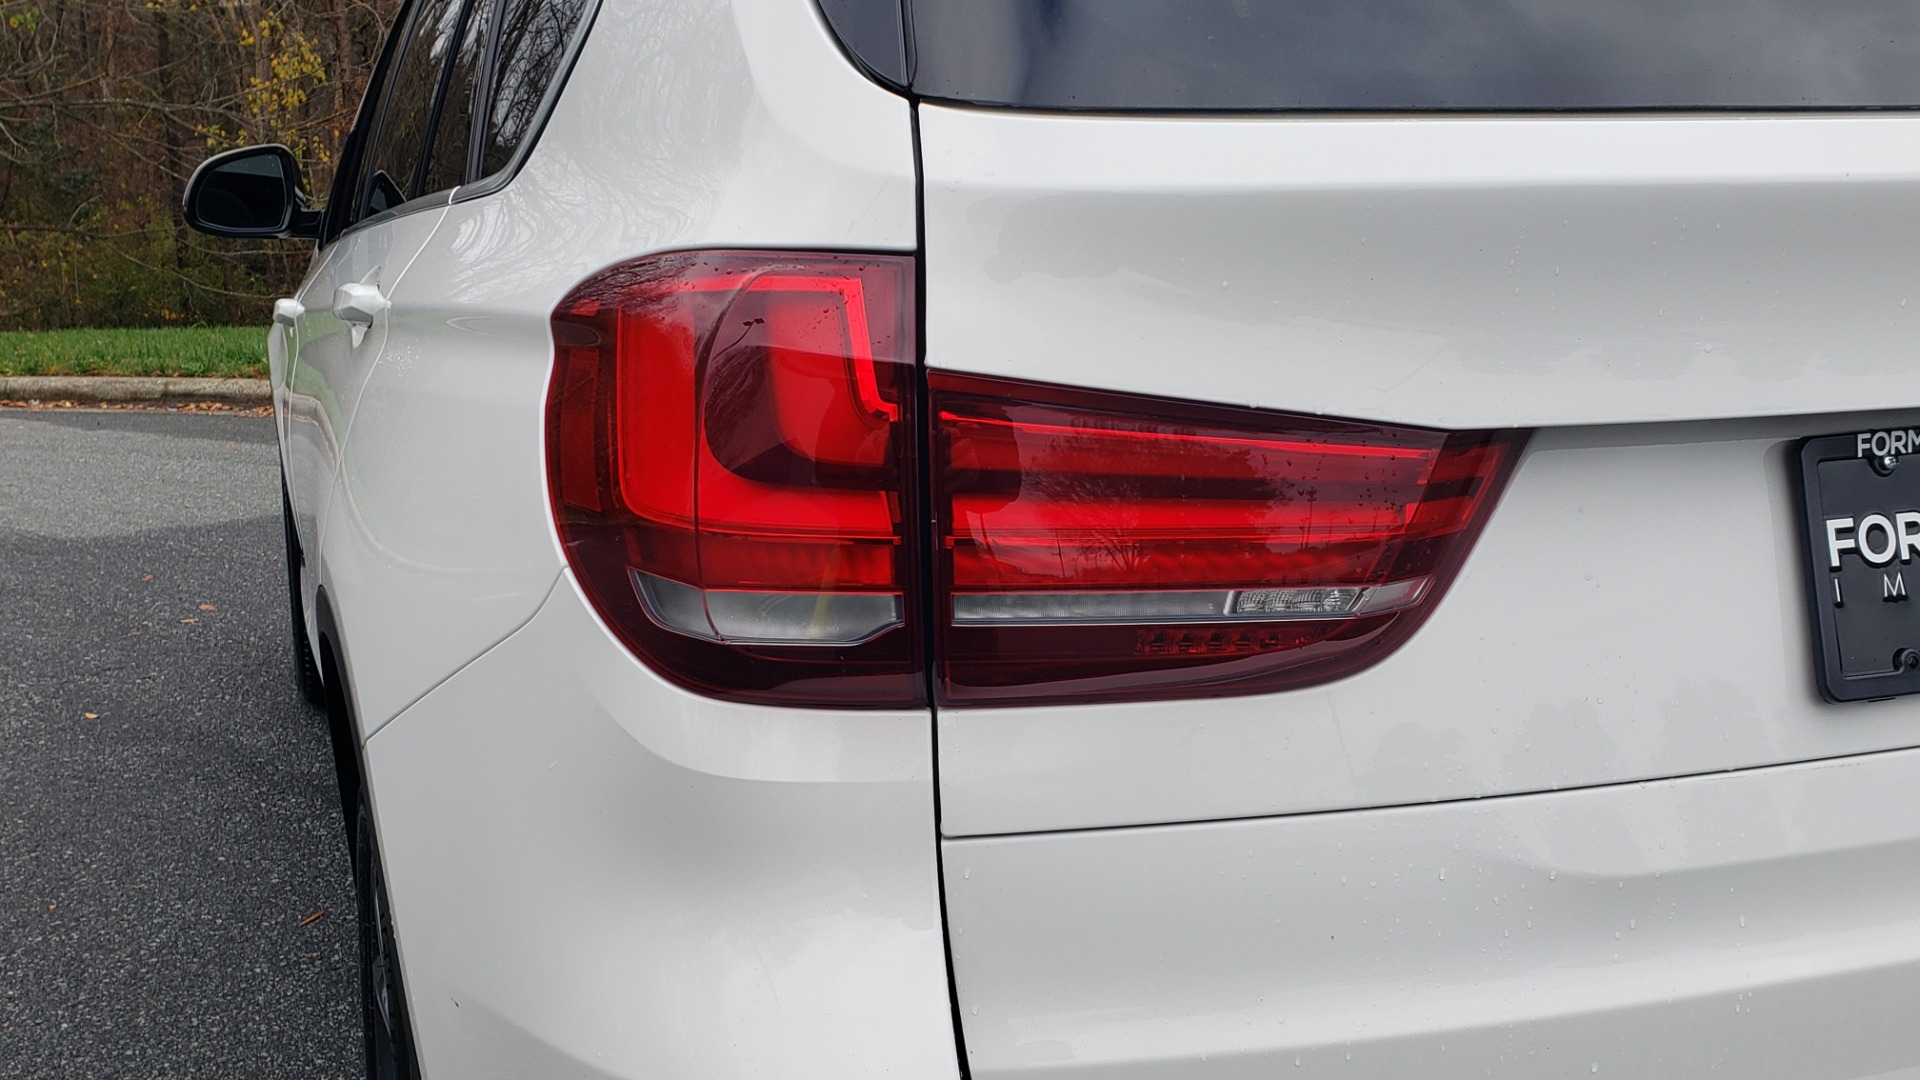 Used 2017 BMW X5 XDRIVE35D / AWD / NAV / DIESEL / SUNROOF / REARVIEW for sale $34,595 at Formula Imports in Charlotte NC 28227 28